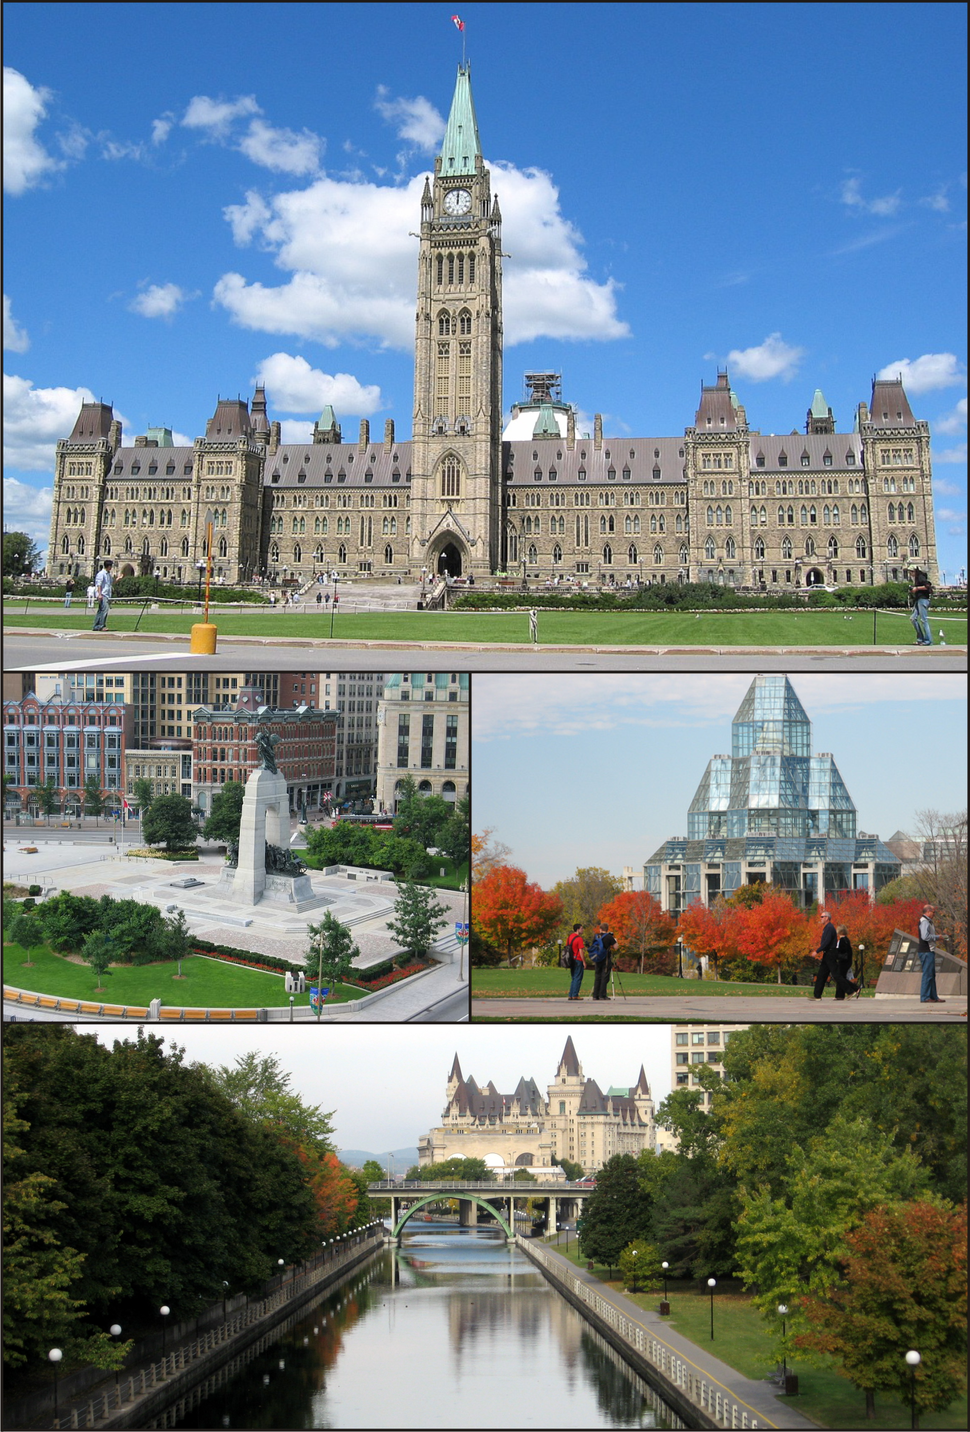 Centre Block on Parliament Hill, the National War Memorial in downtown Ottawa, the National Gallery of Canada, and the Rideau Canal with Château Laurier